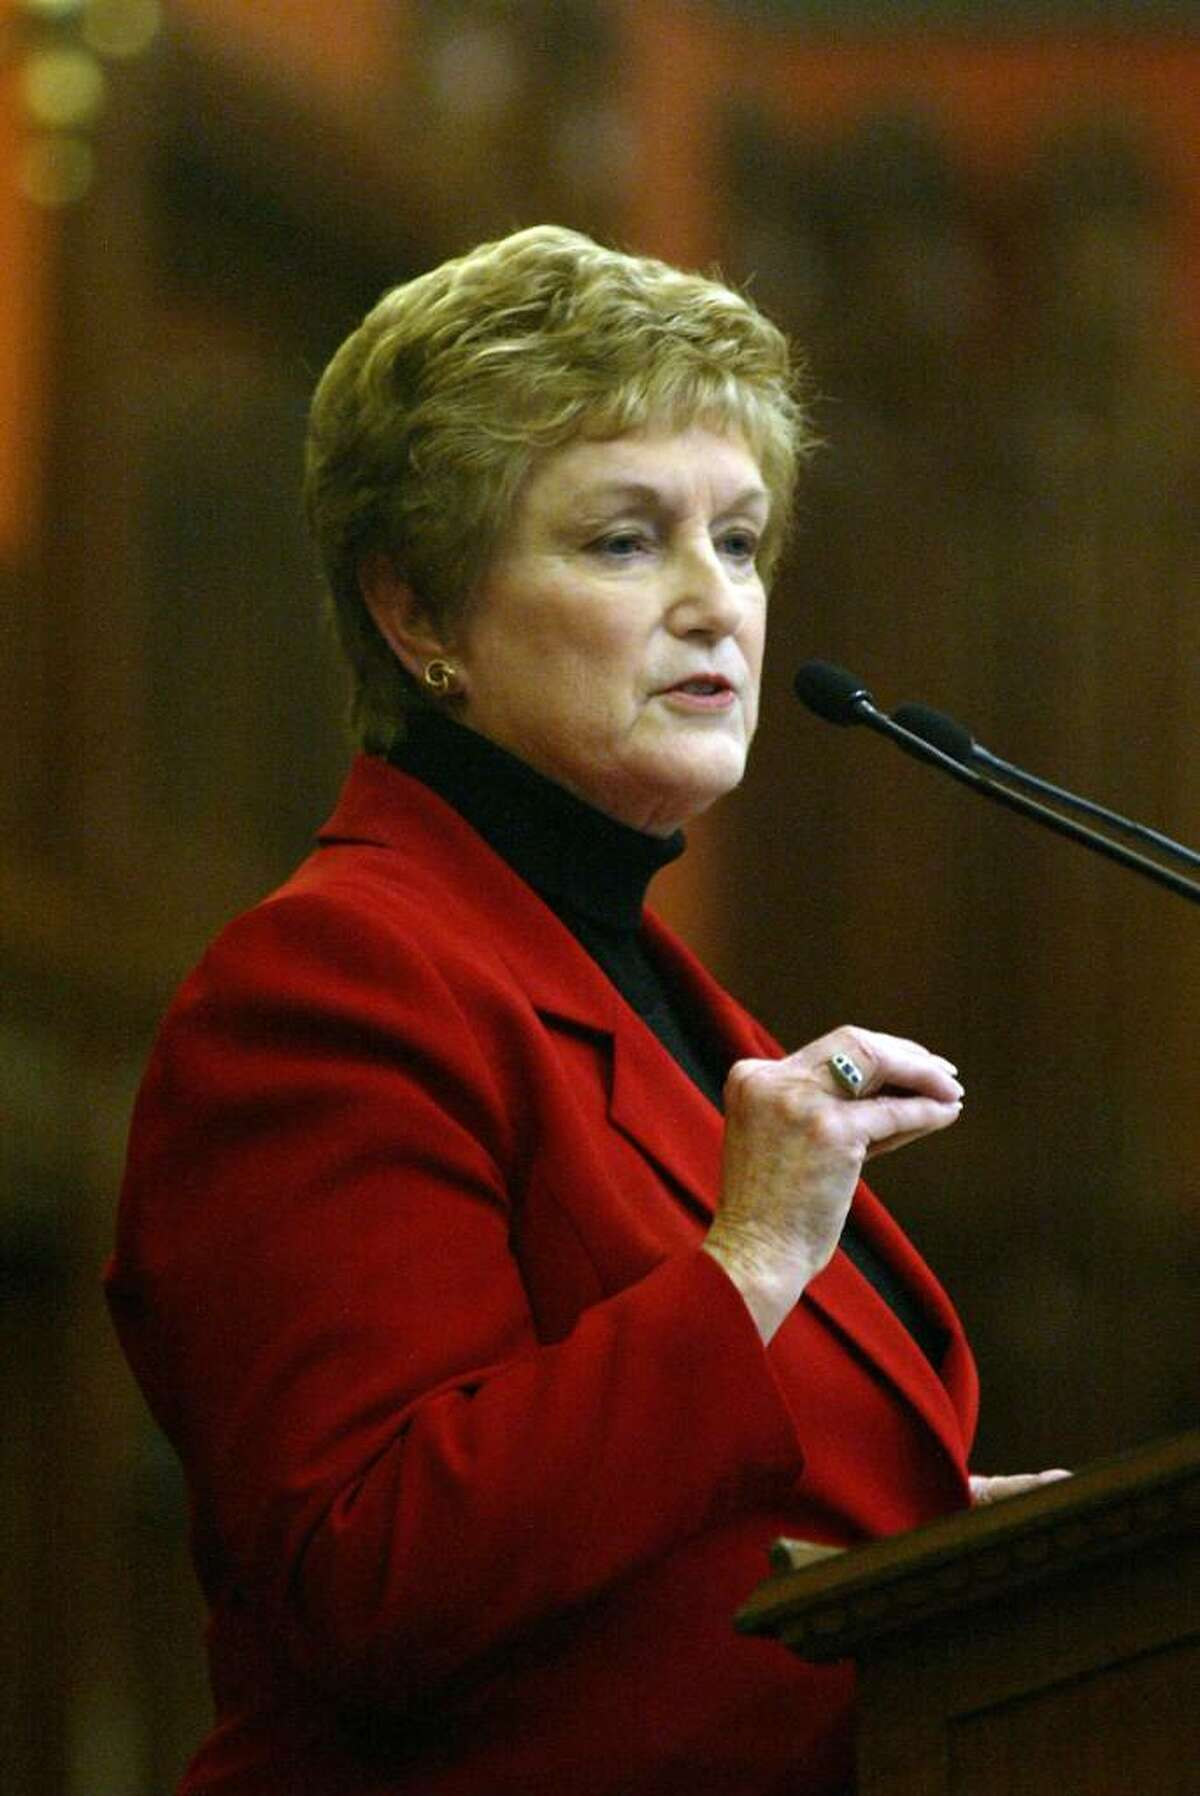 Governor, M. Jodi Rell gives her annual budget address, Wednesday, Feb. 3, 2010, at the State Capital in Hartford.